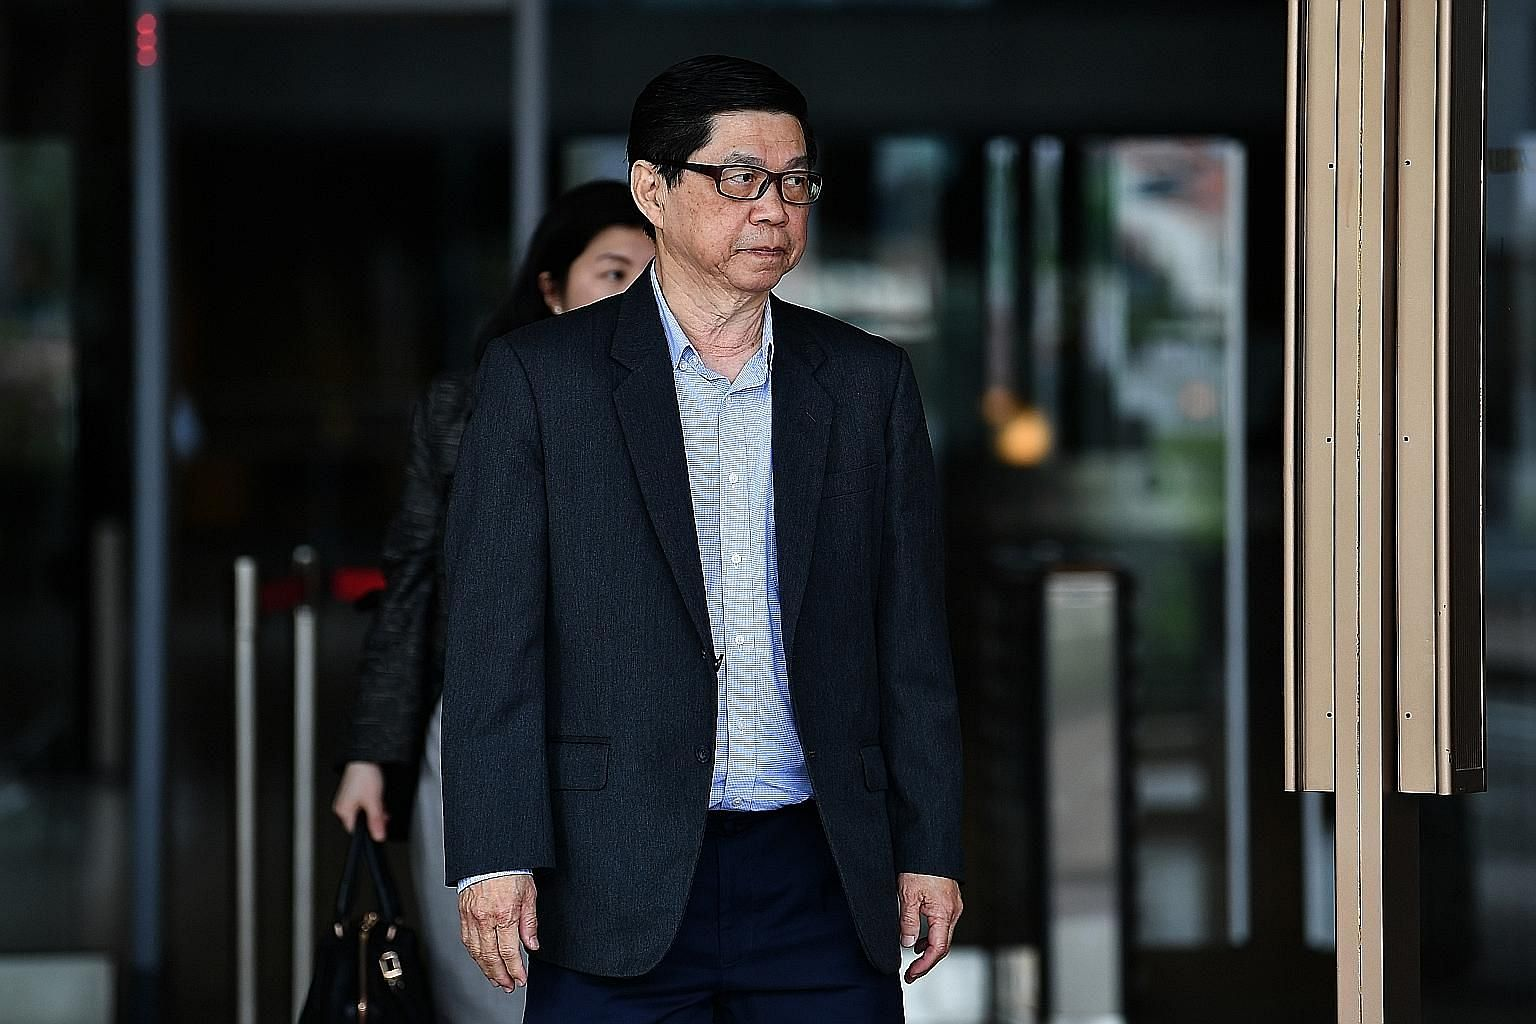 Dr Wee Teong Boo was previously accused of molesting a 23-year-old student at his Bedok clinic during an examination in November 2015, and of raping her when she visited the clinic again a month later.